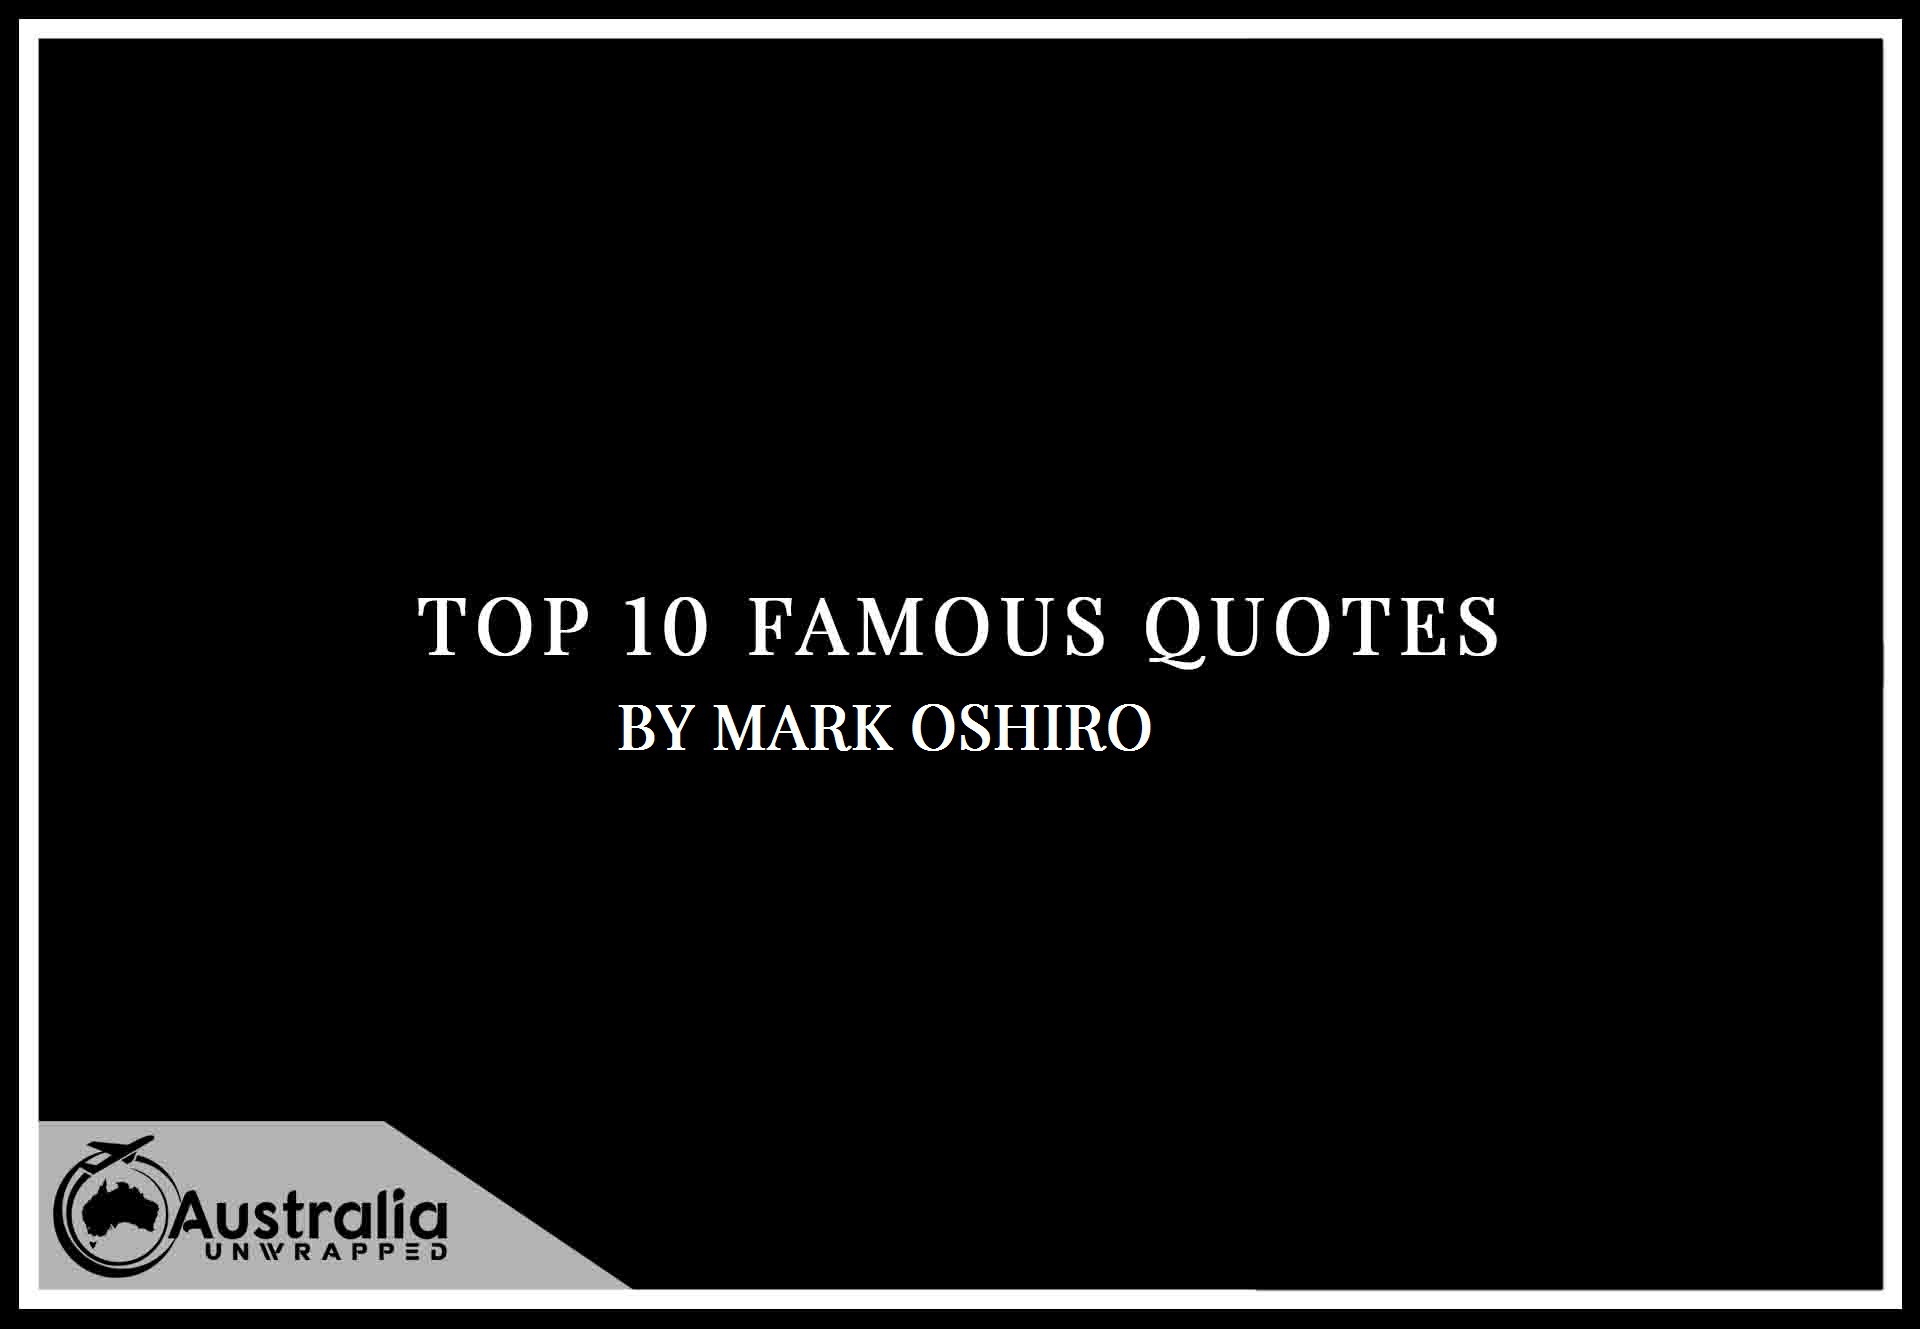 Mark Oshiro's Top 10 Popular and Famous Quotes